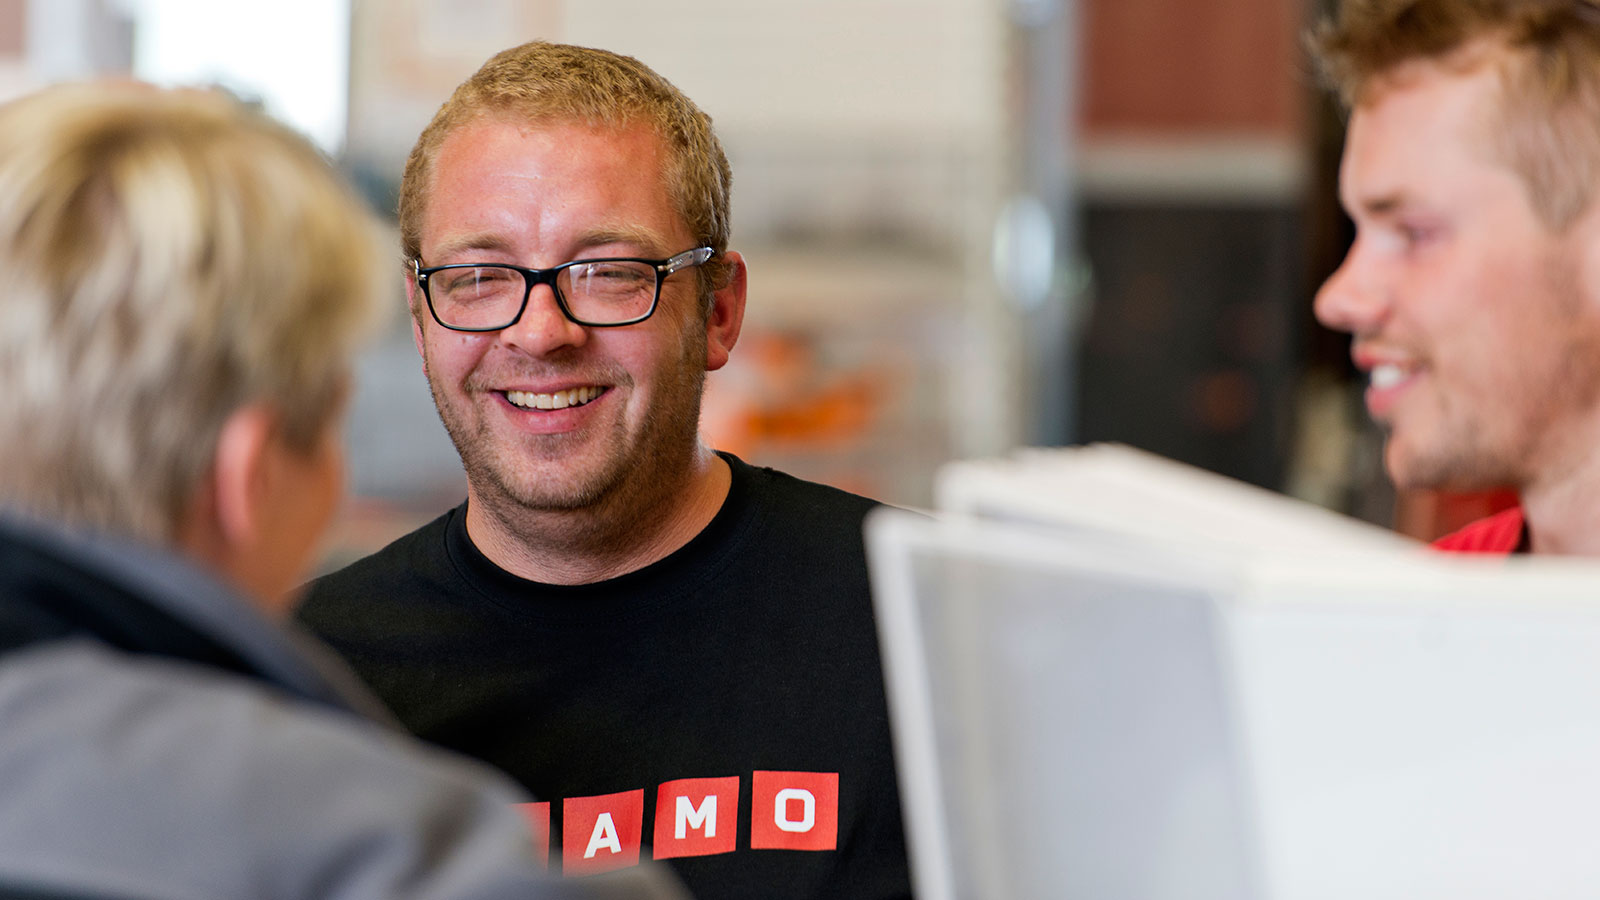 cramo_people_9_web.jpg